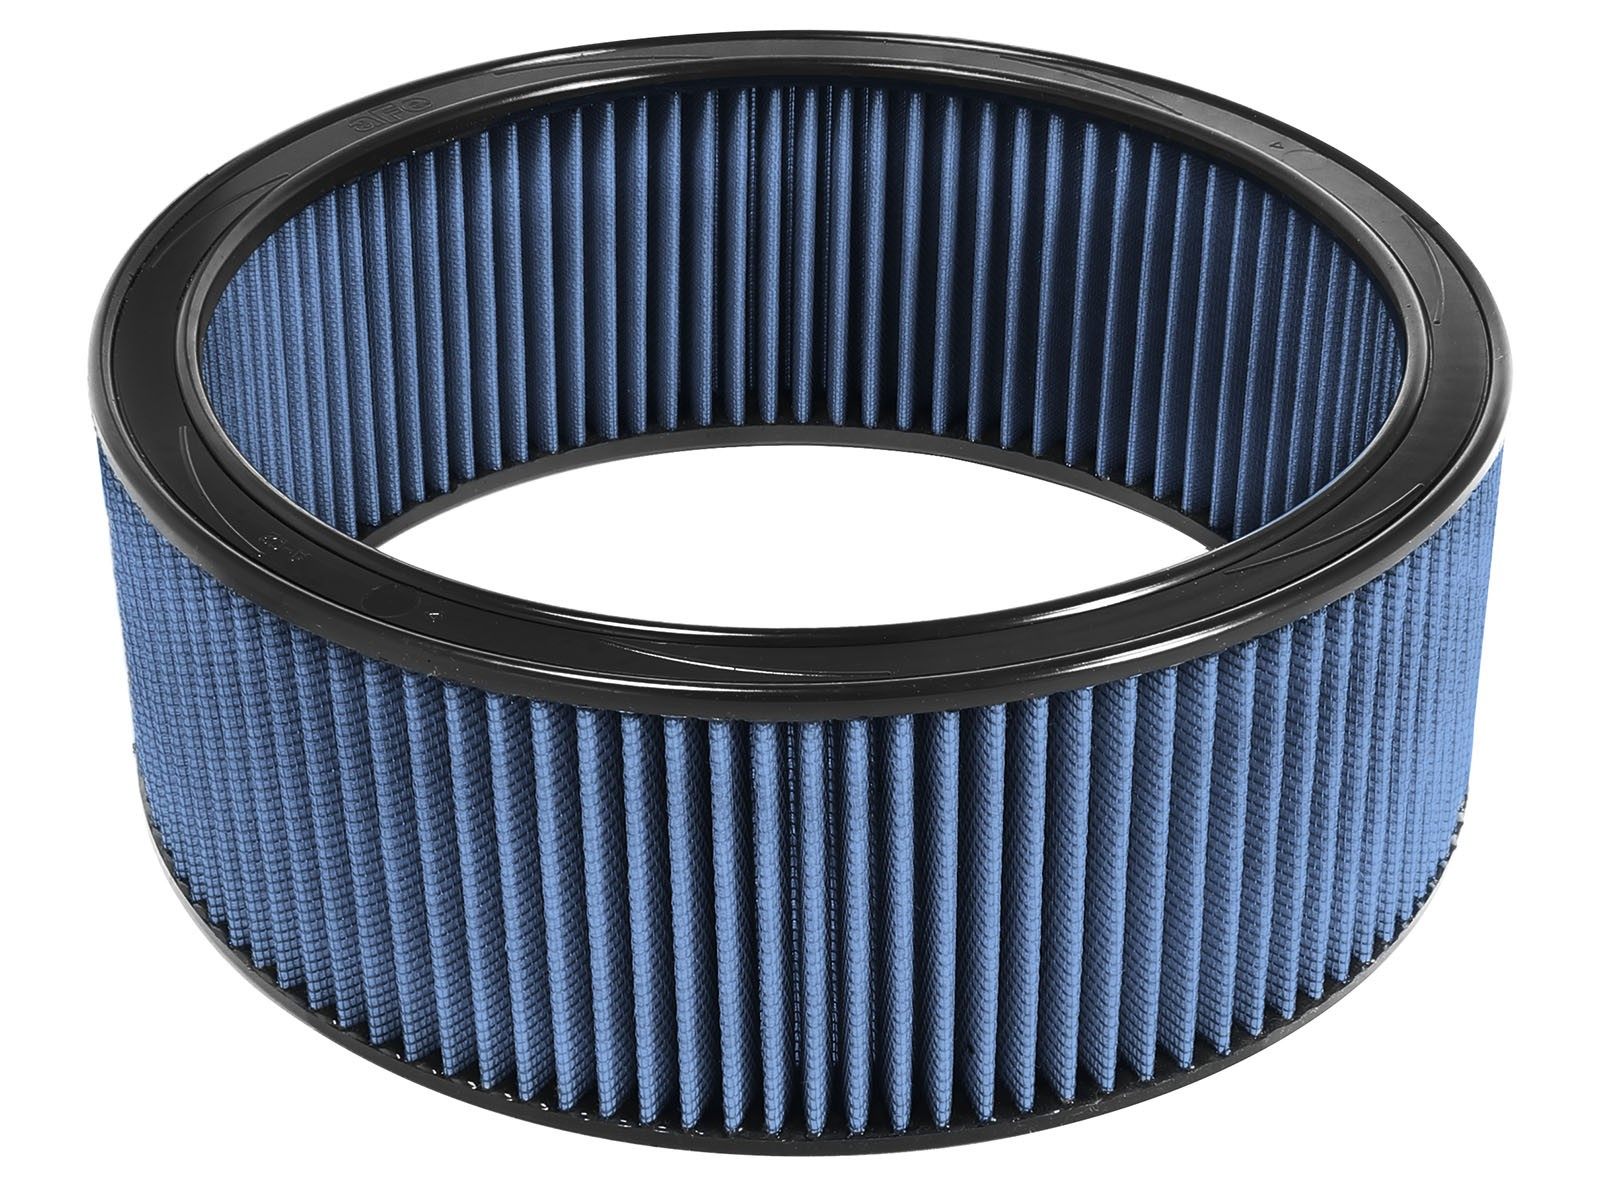 aFe POWER 10-10014 Magnum FLOW Pro 5R Air Filter